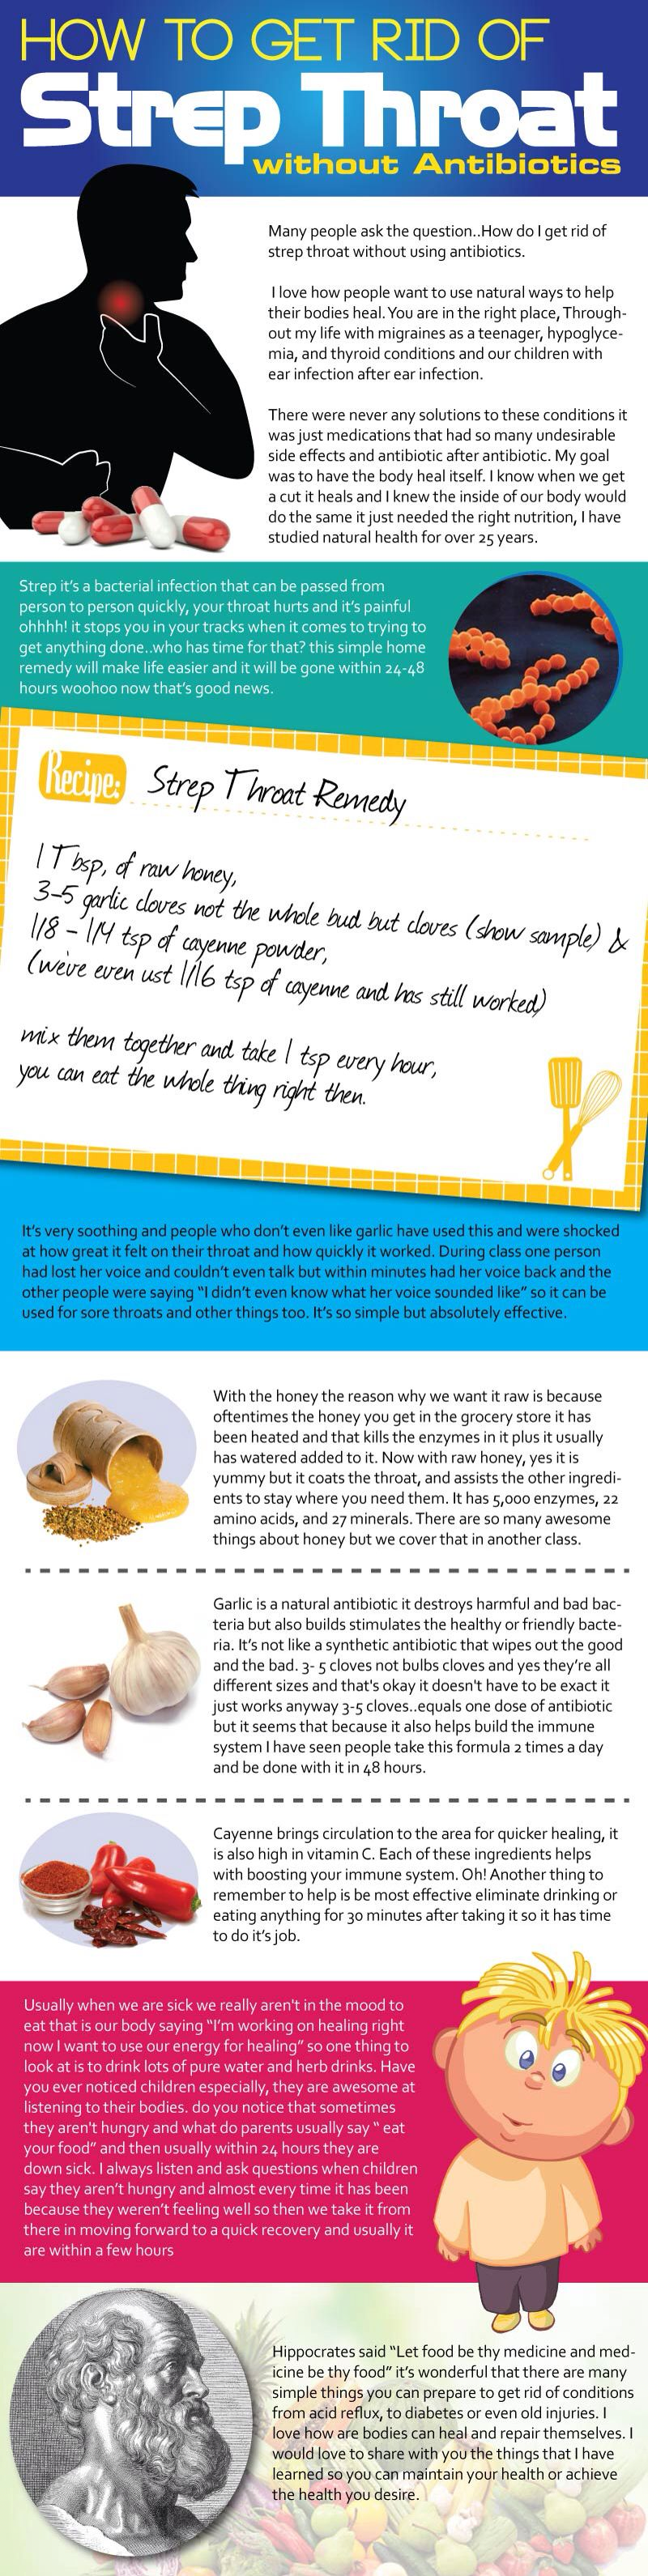 Killed my strep in 1 day last year. Natural Strep Throat Remedy: 1 Tbsp, of  raw honey (coats) ; ⅛ - ¼ tsp of cayenne powder (increases circulation for  ...